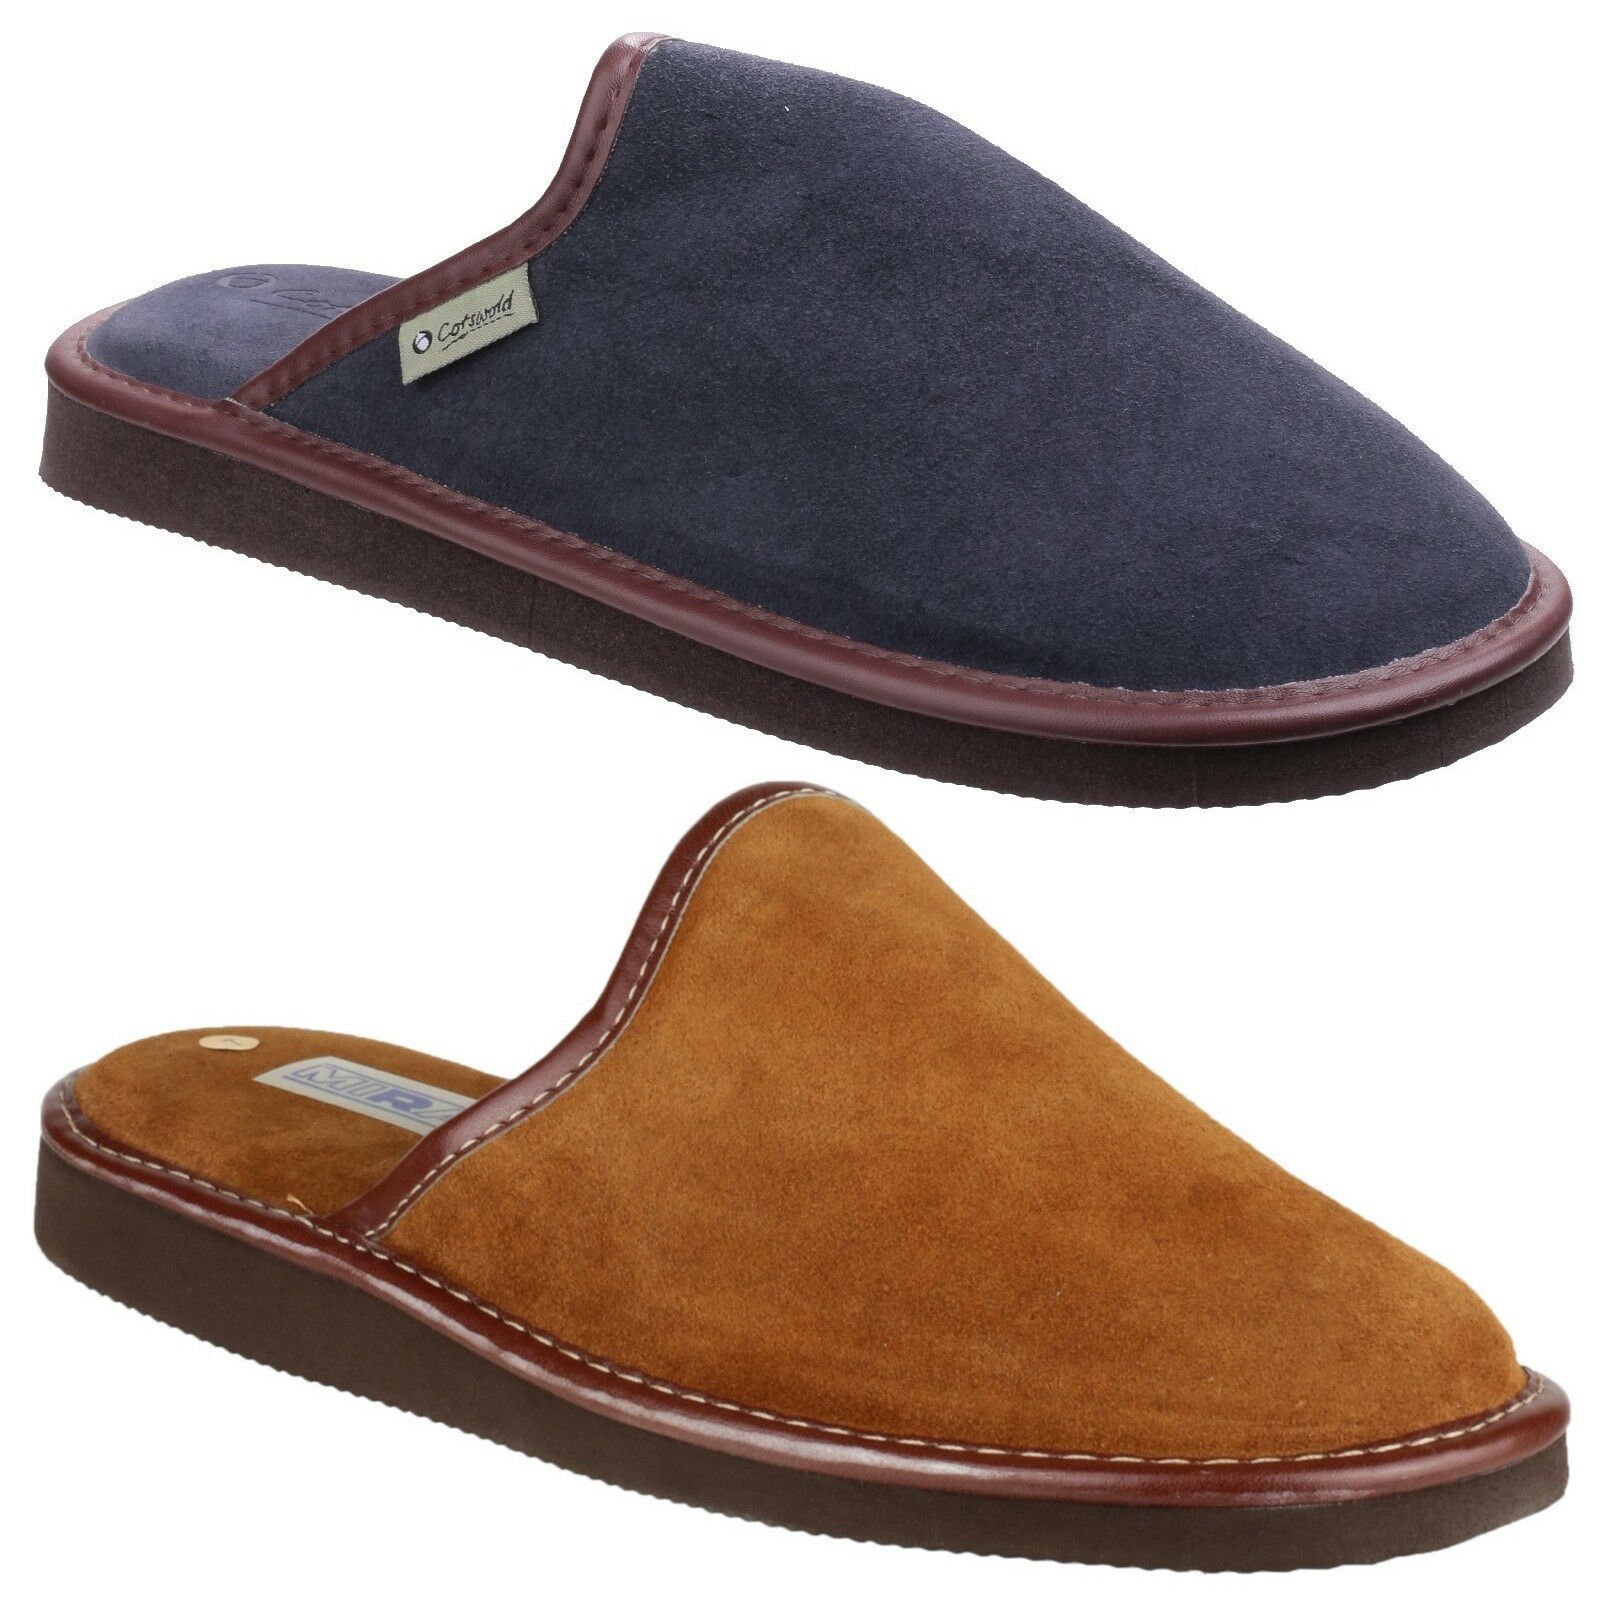 843ed0d18ee Cotswold Reg Lightweight Mule Mens Suede Leather Slip On Comfort Slippers